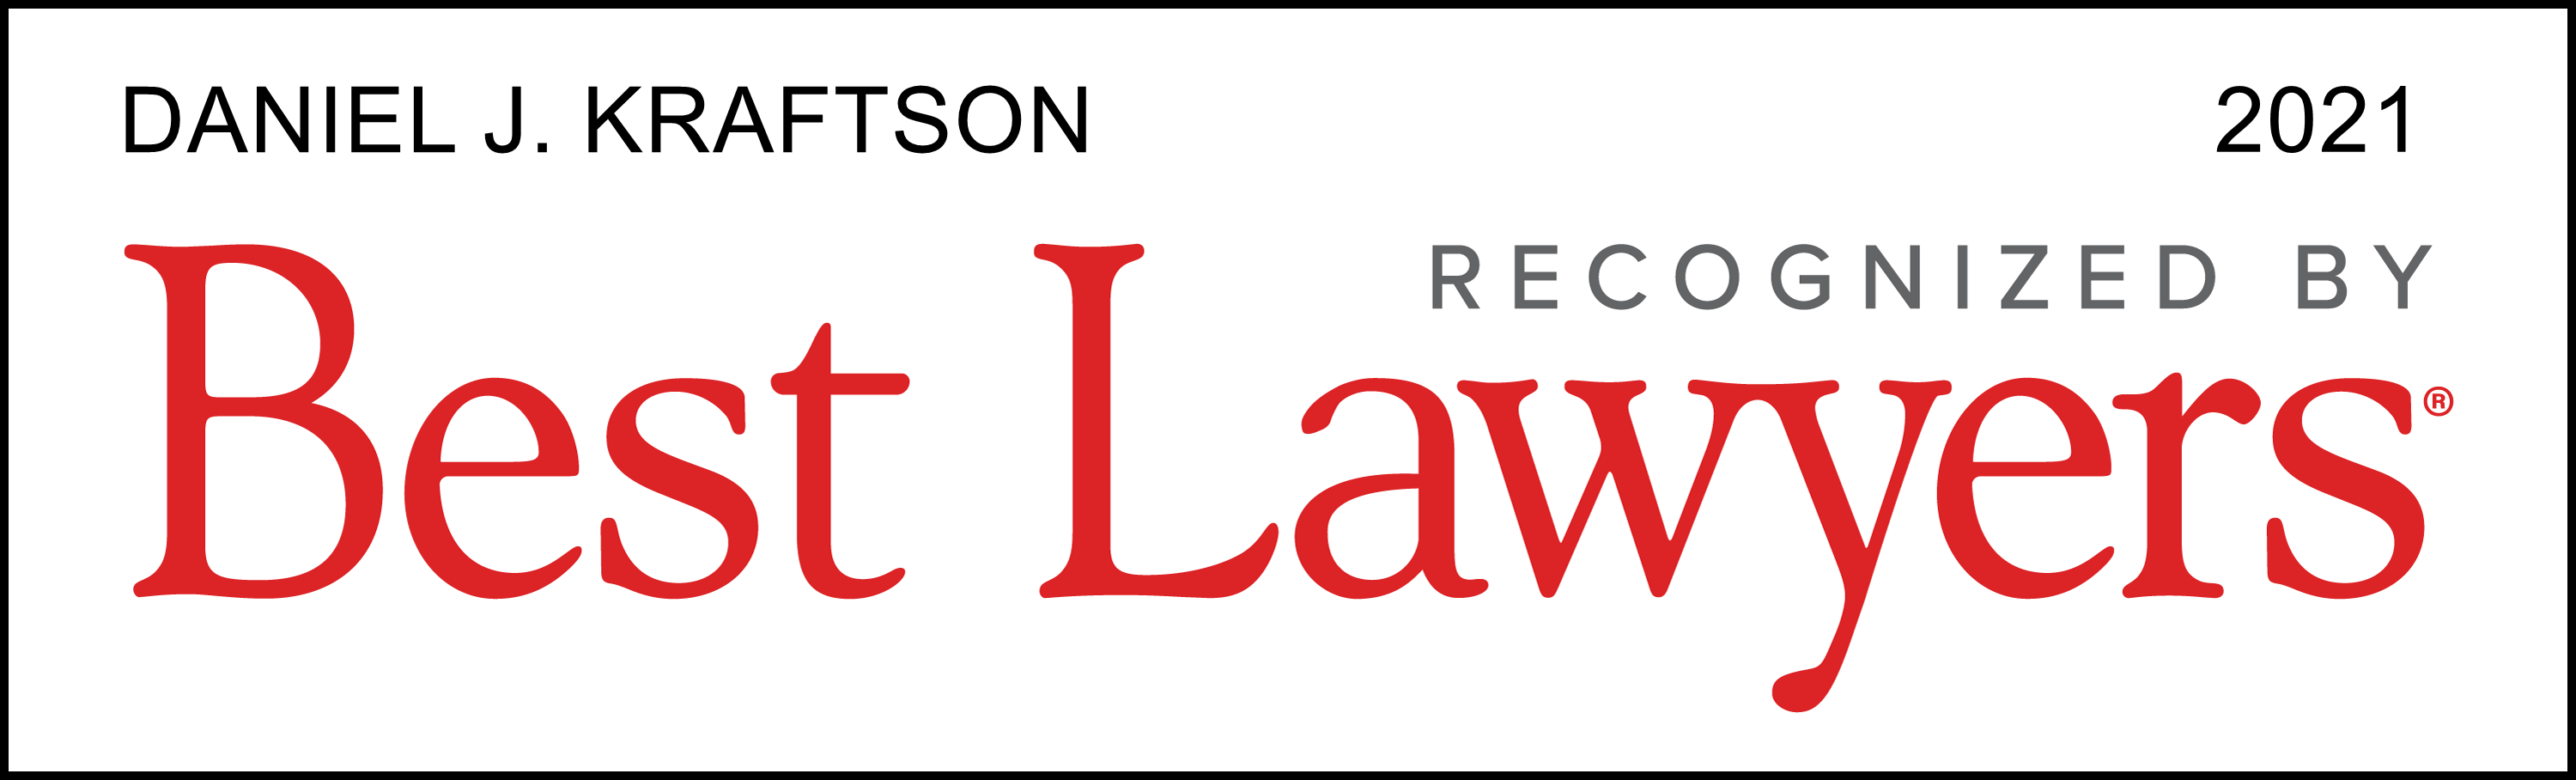 Daniel J. Kraftson Best Lawyers 2021